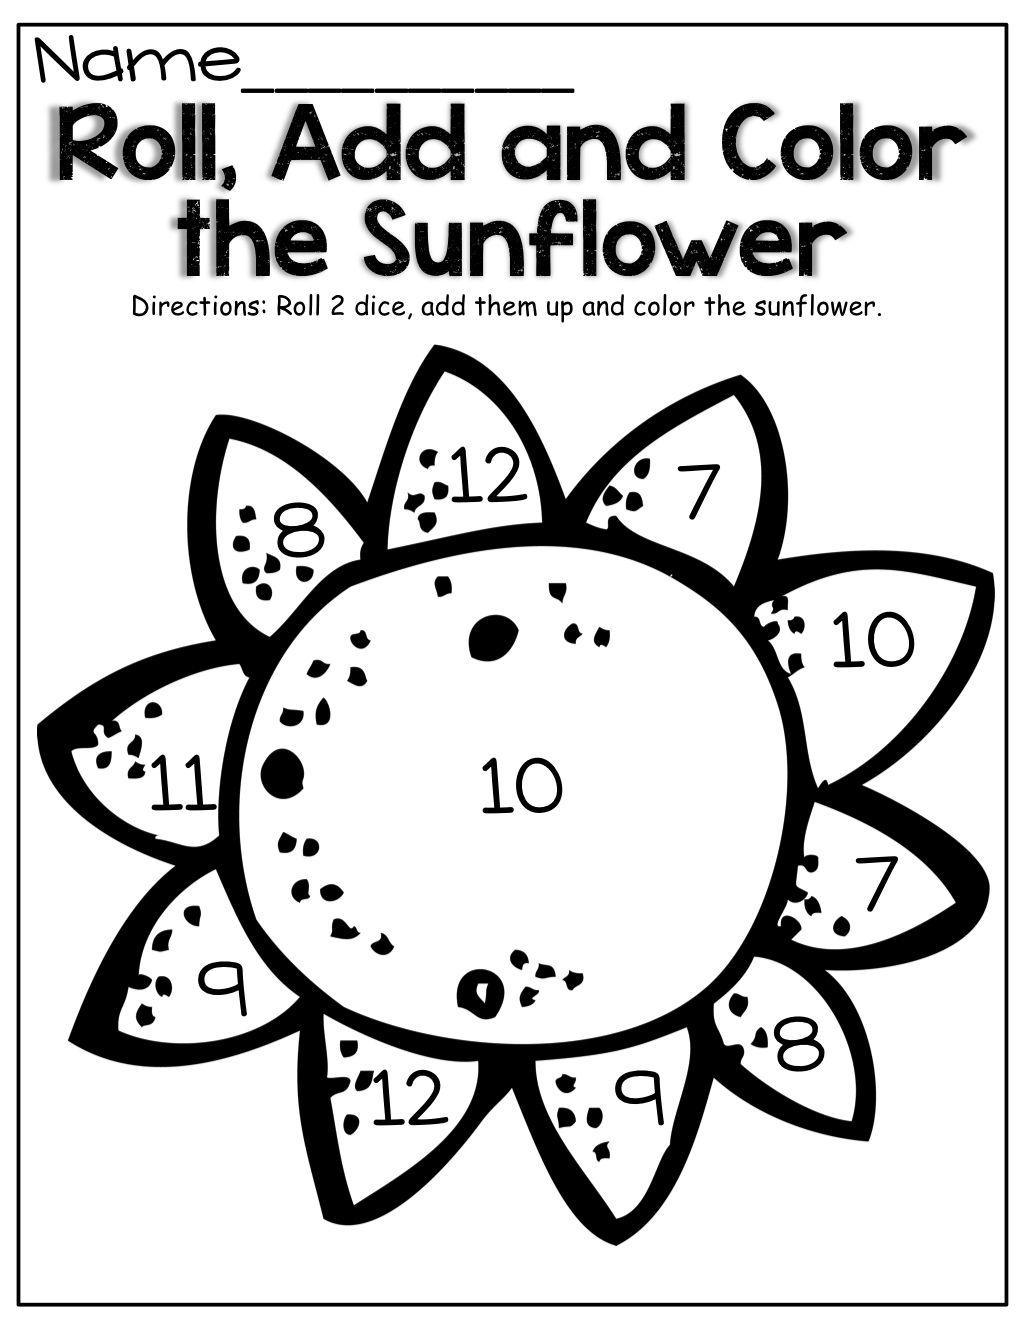 Sunflowers and Blue Jay bird coloring page for kids